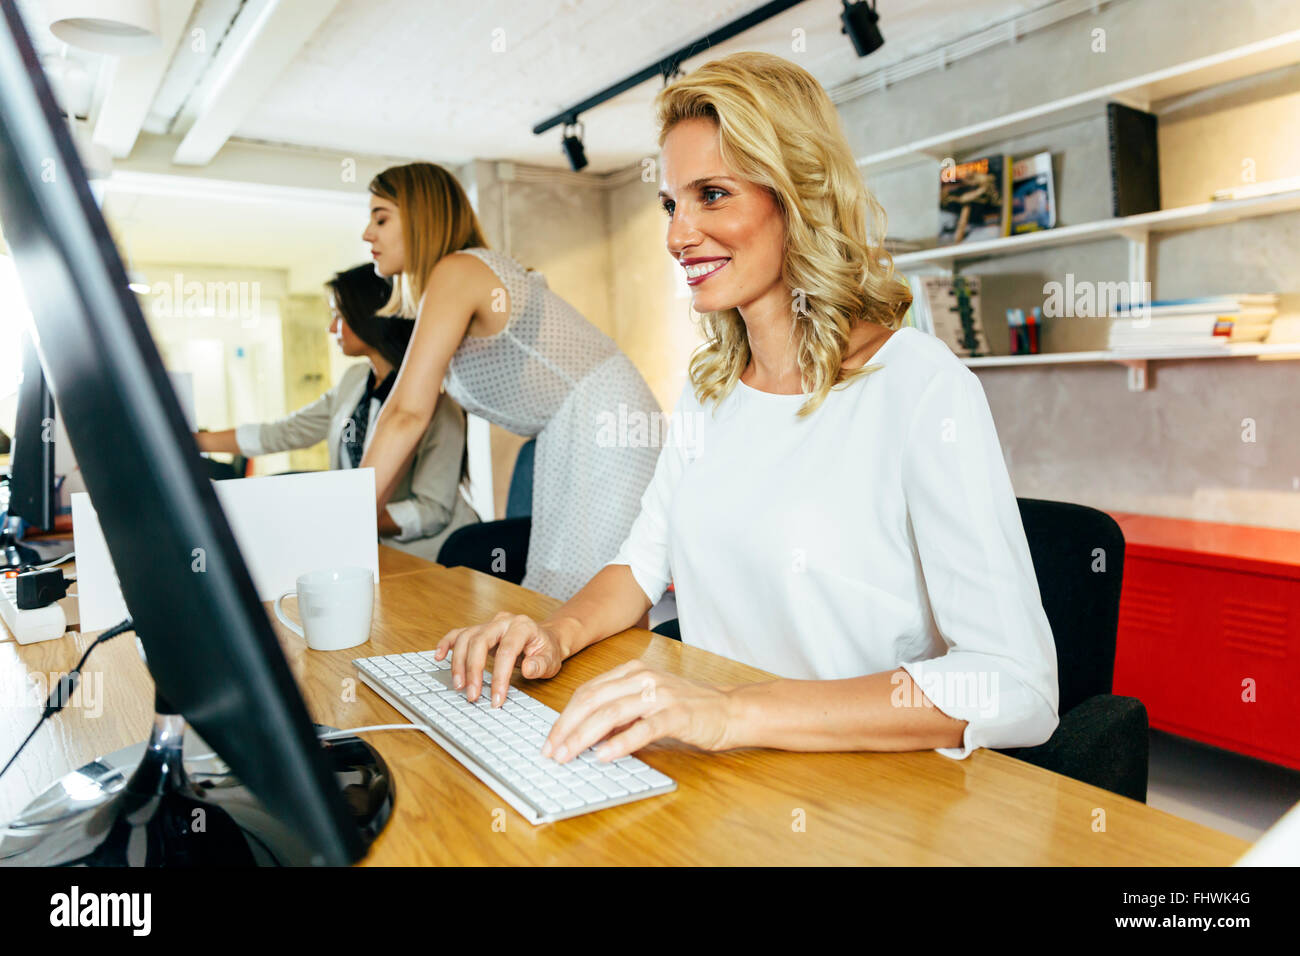 Beautiful woman working in a modern office while sitting in front of a desktop - Stock Image